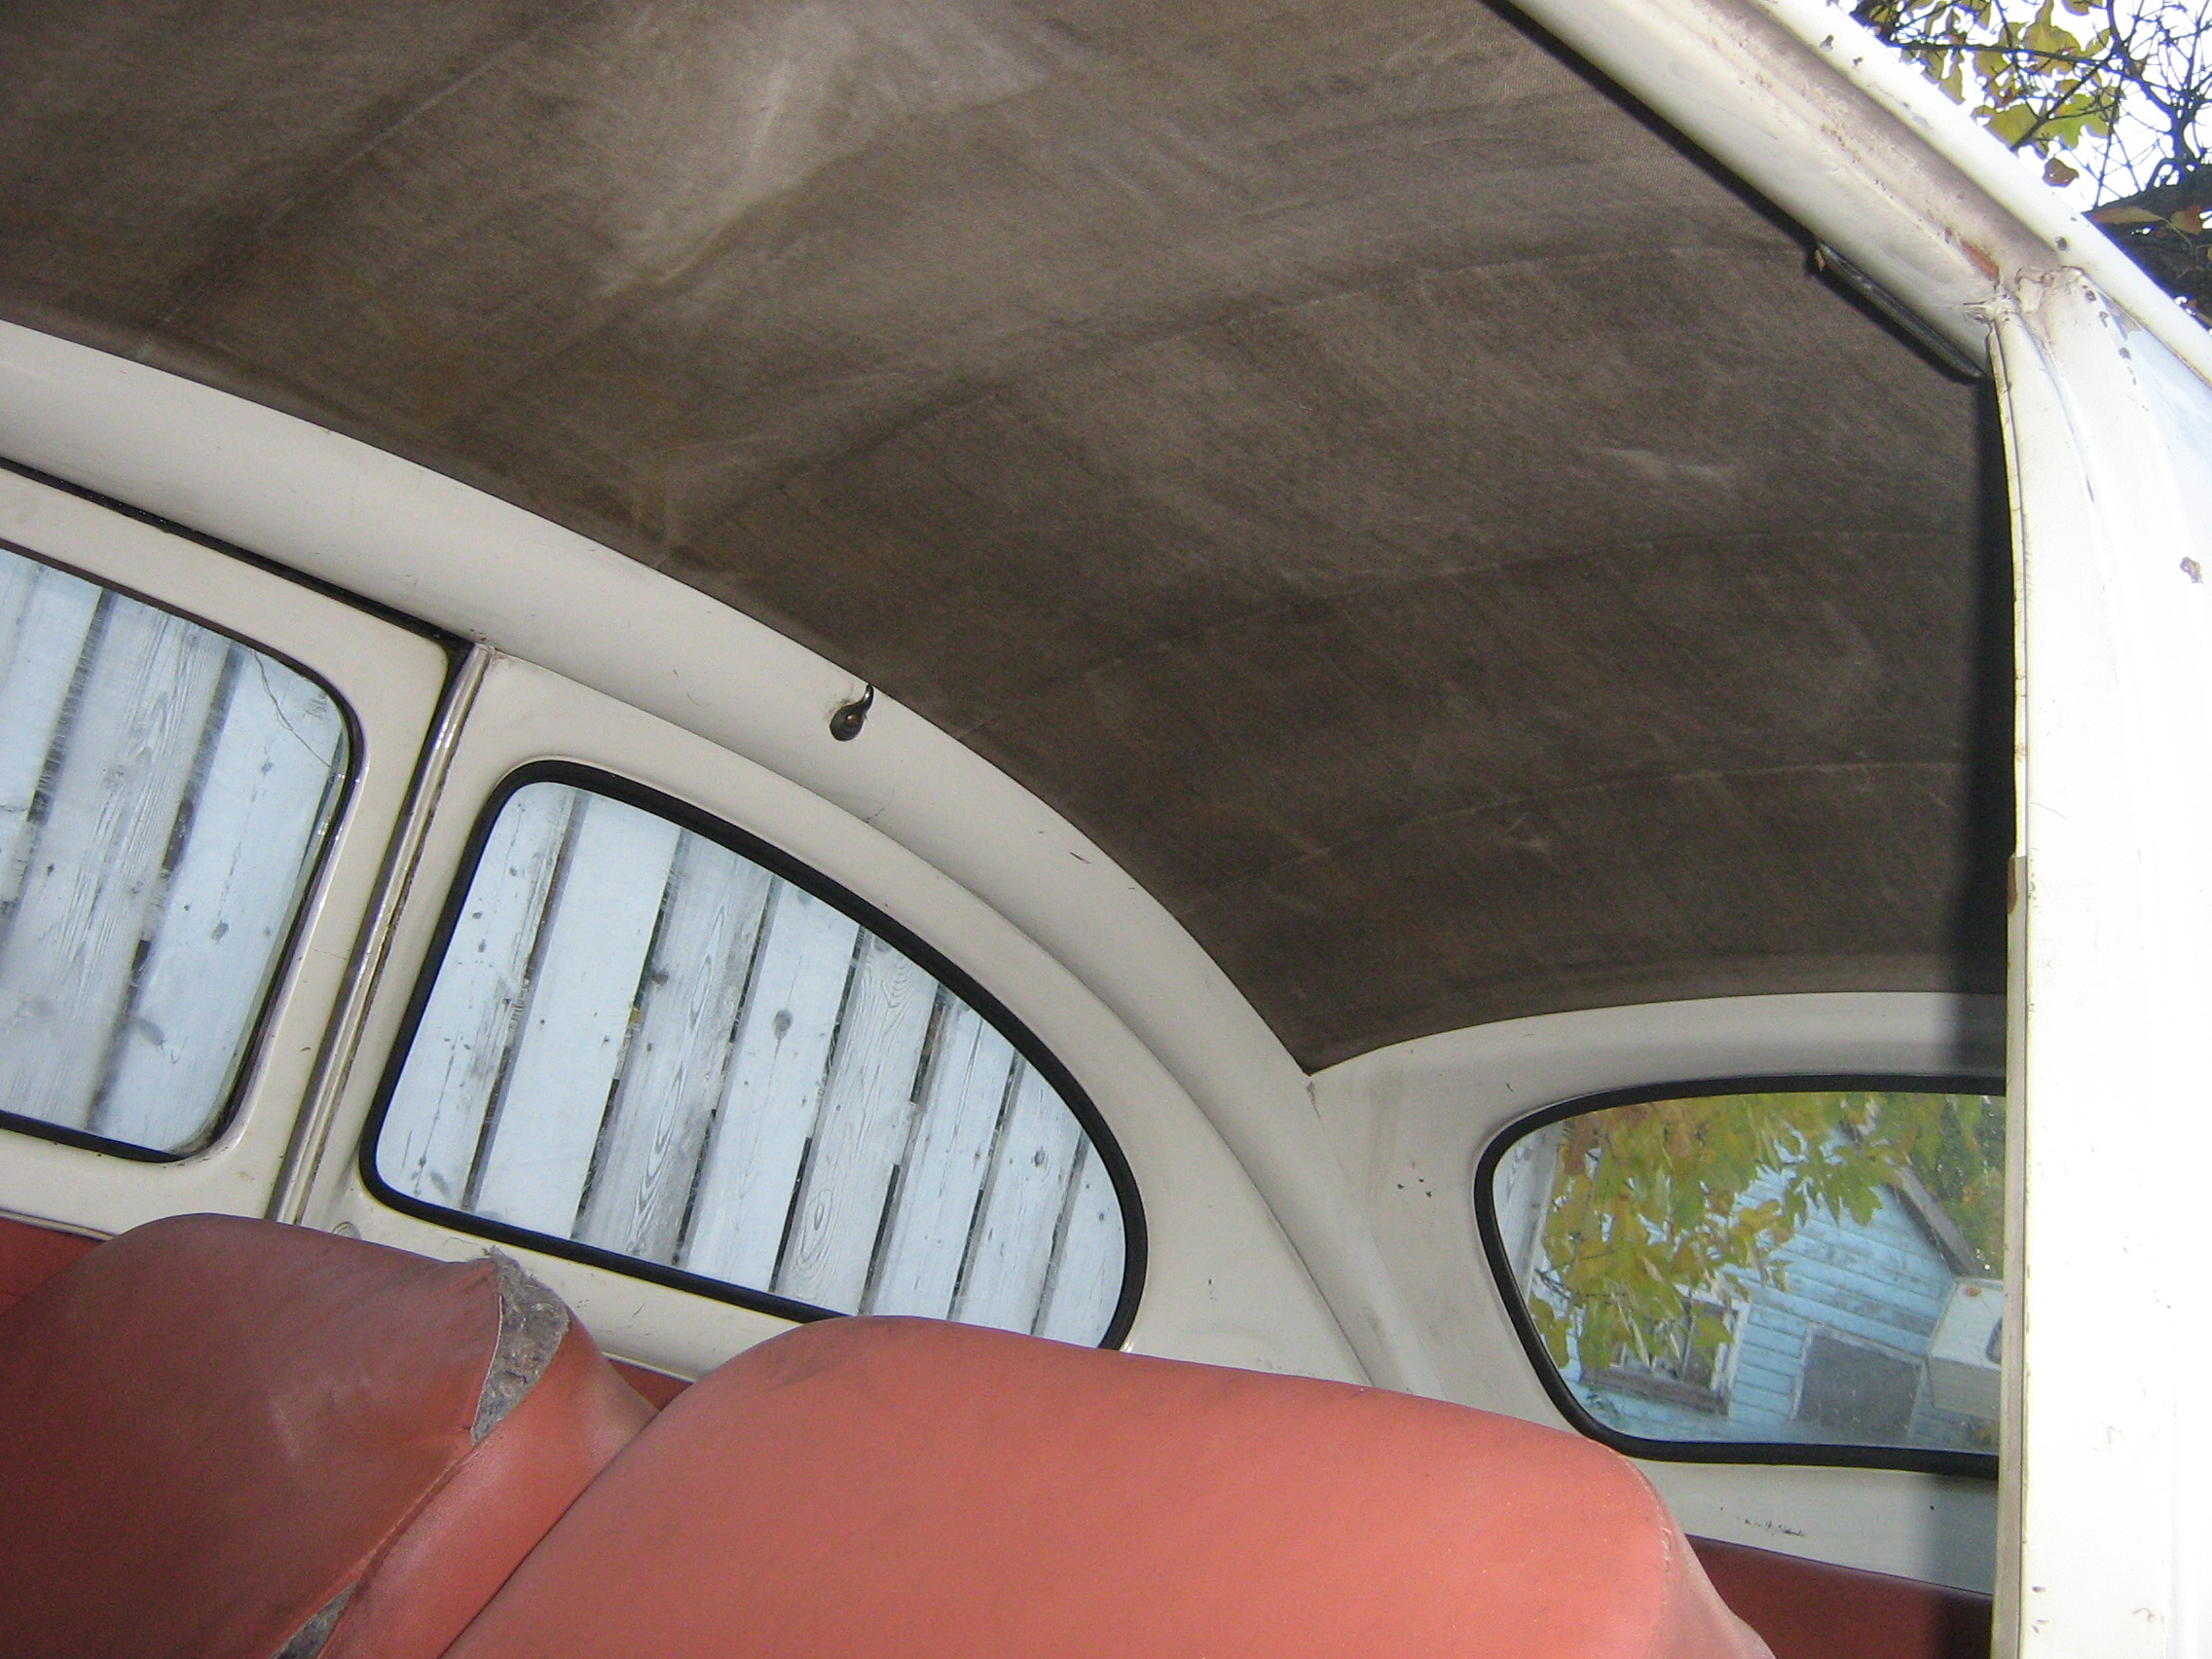 Automotive Headliner Market Top Manufactures  Analysis, Size, Share, Trends and Forecast to 2022